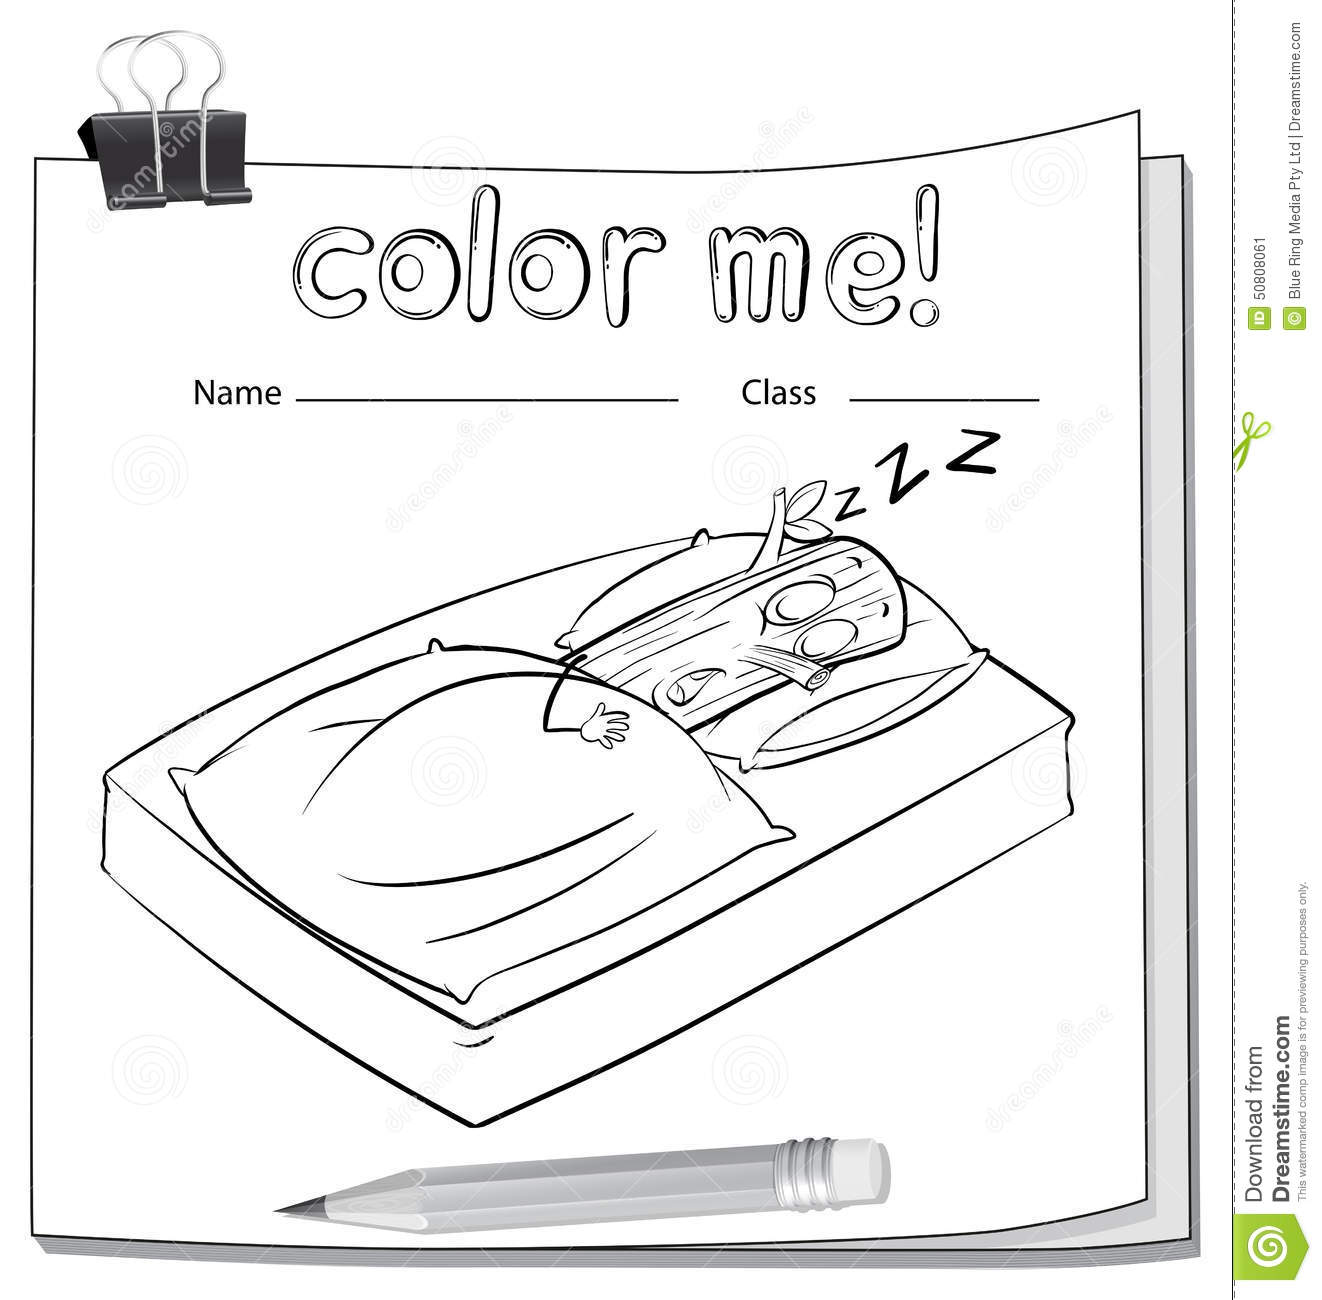 A Worksheet With A Log Sleeping Stock Vector